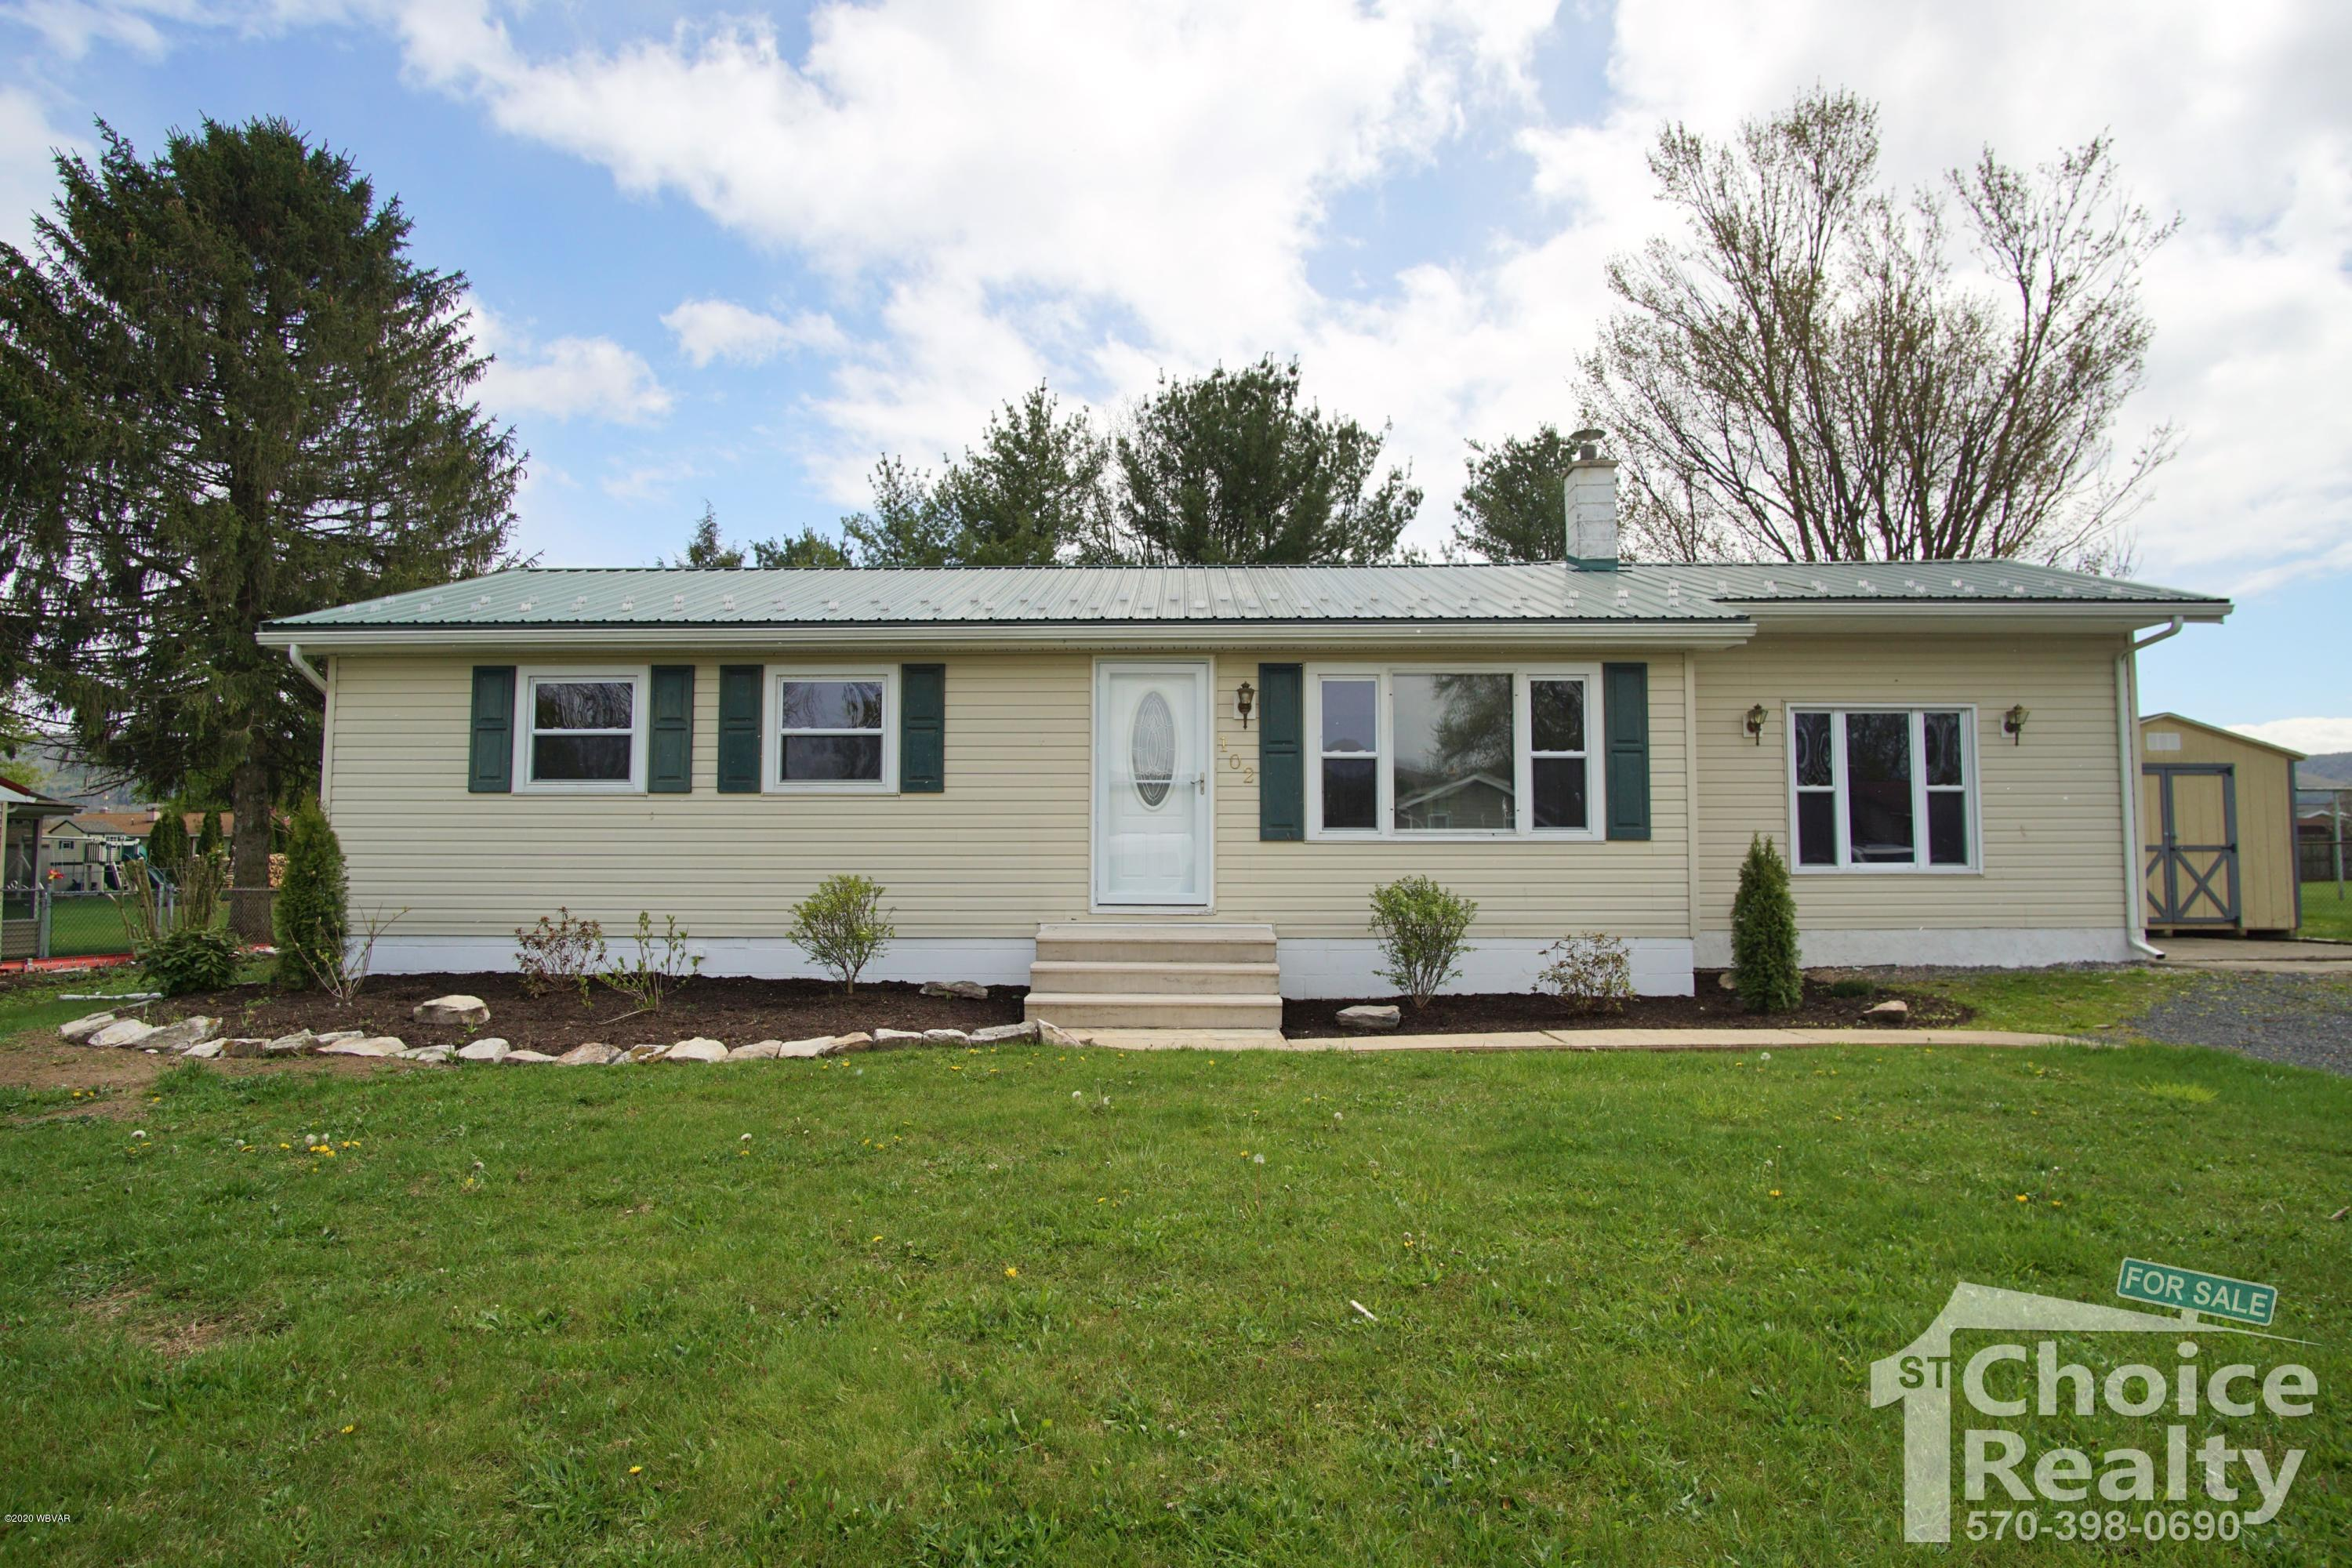 102 WAGNER ROAD, Jersey Shore, PA 17740, 3 Bedrooms Bedrooms, ,1.5 BathroomsBathrooms,Residential,For sale,WAGNER,WB-90019